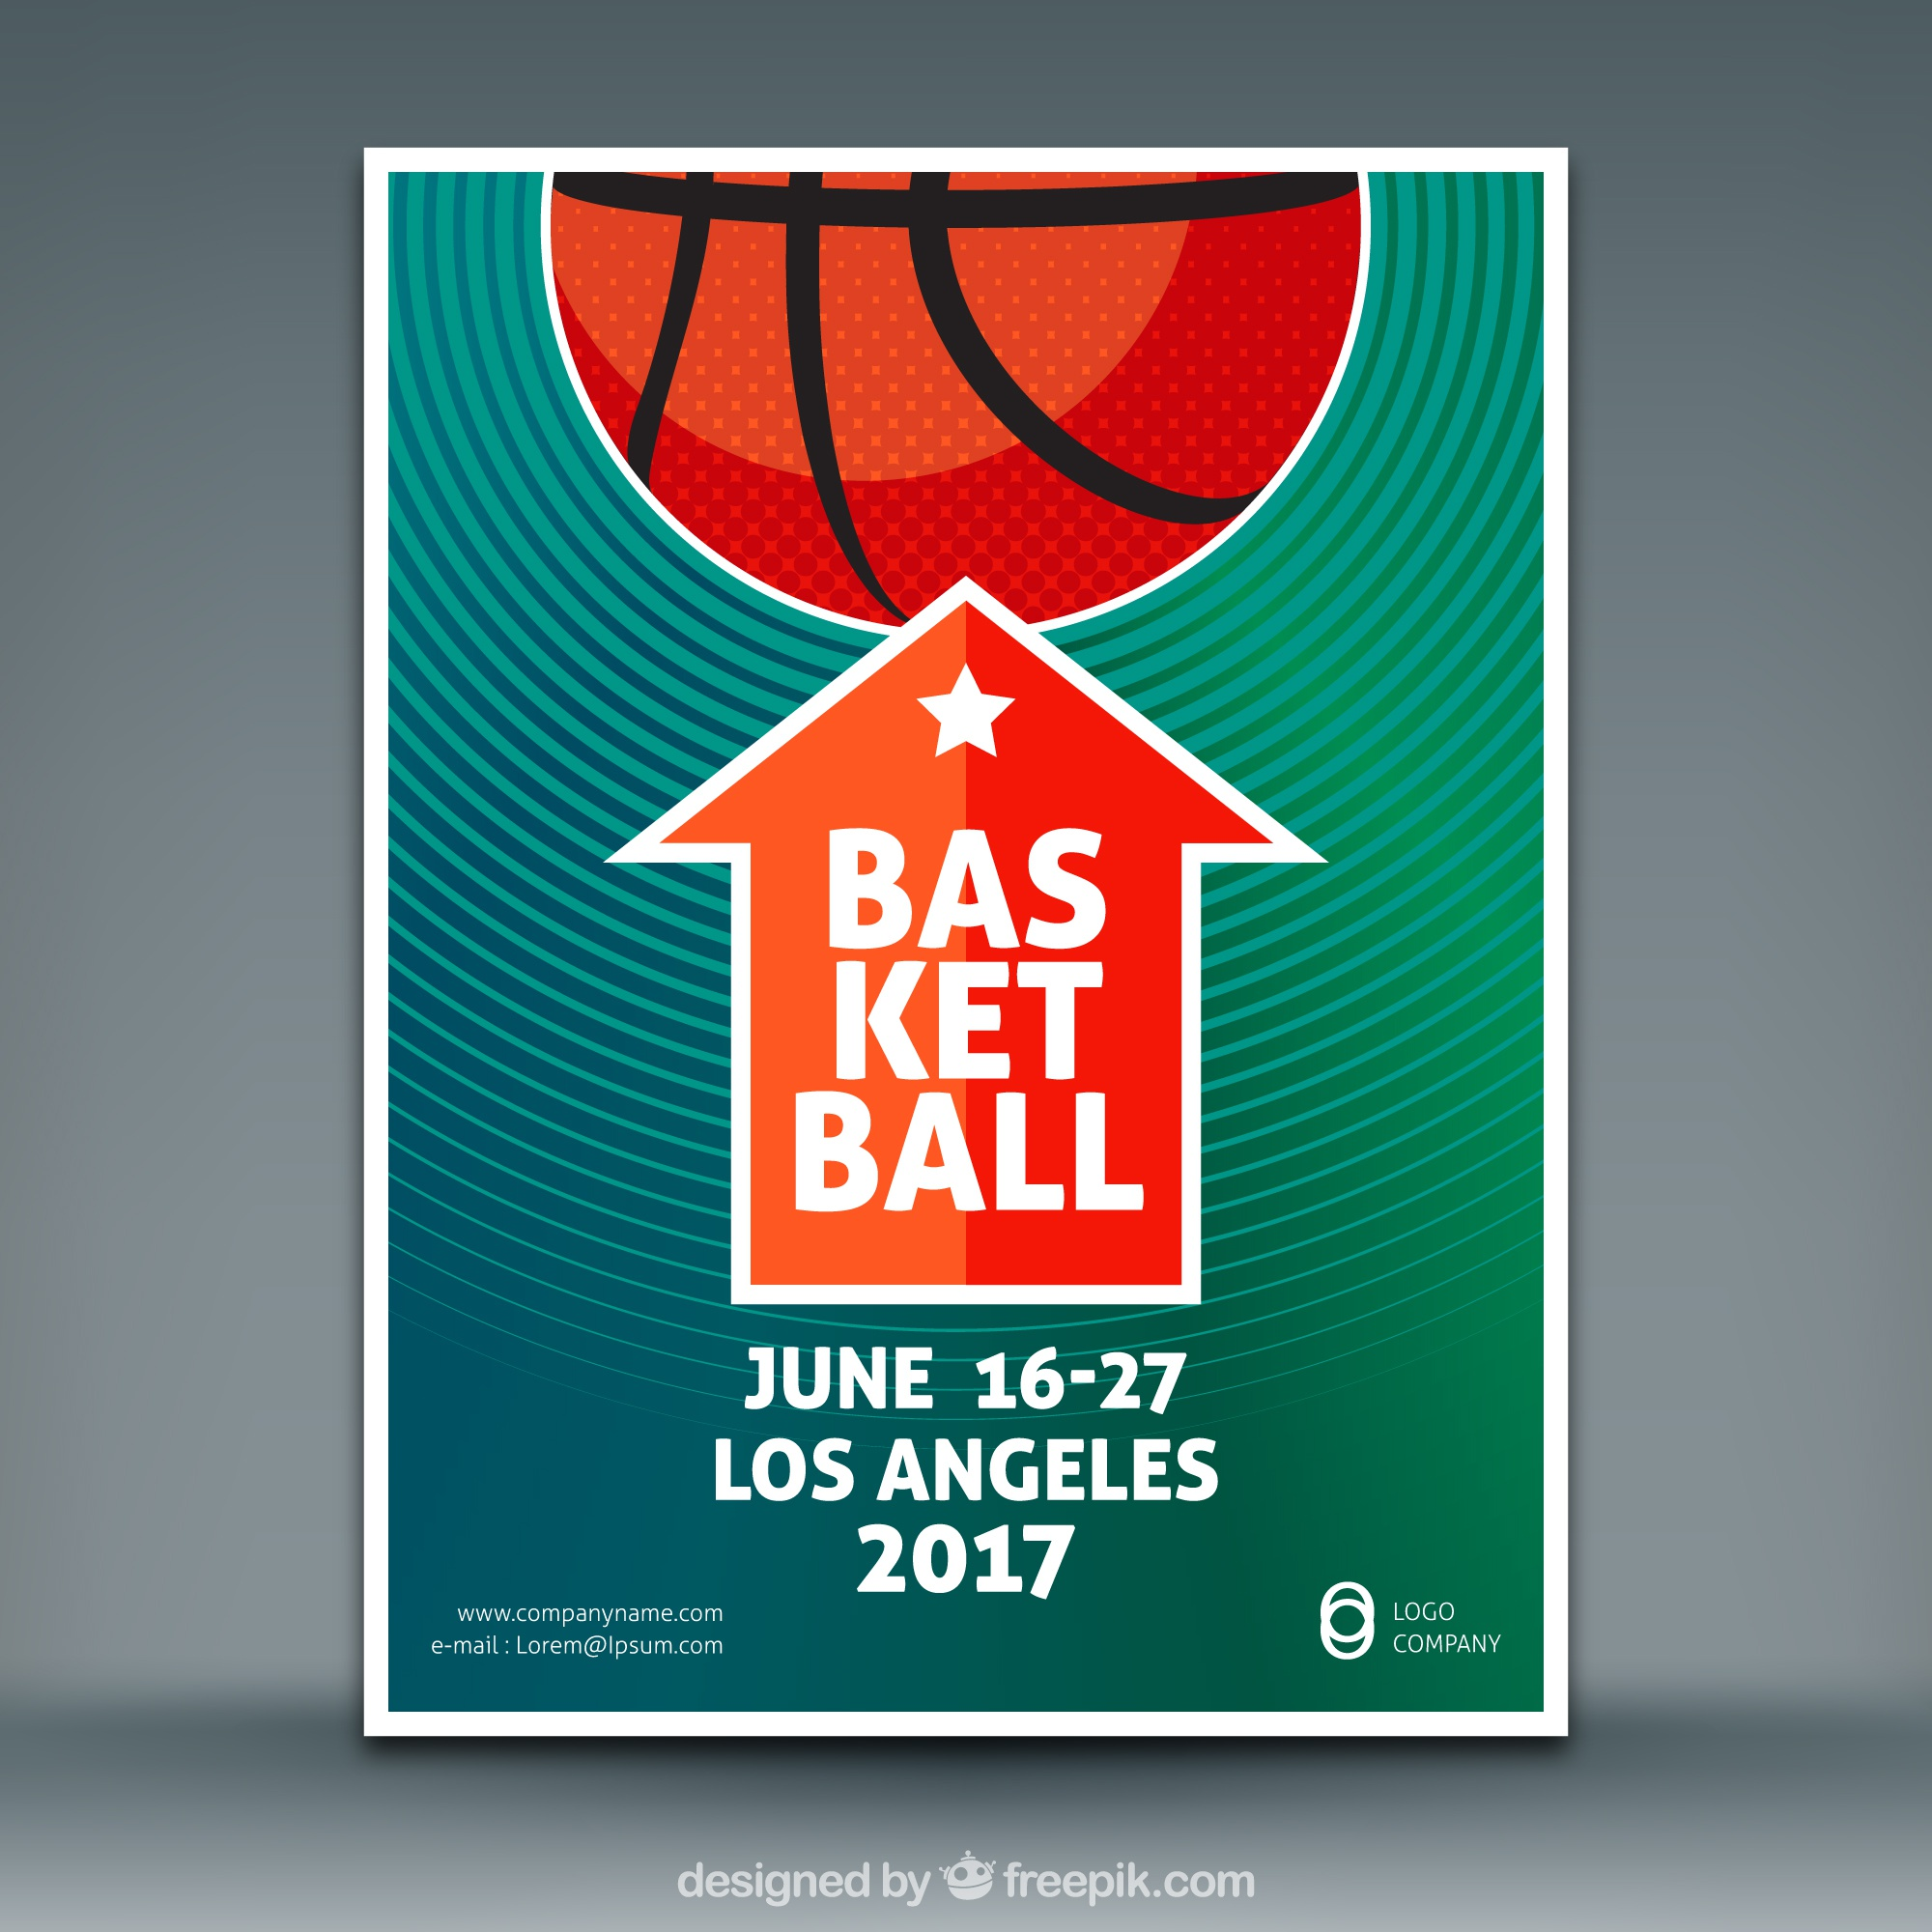 Basketball-Spiel Flyer